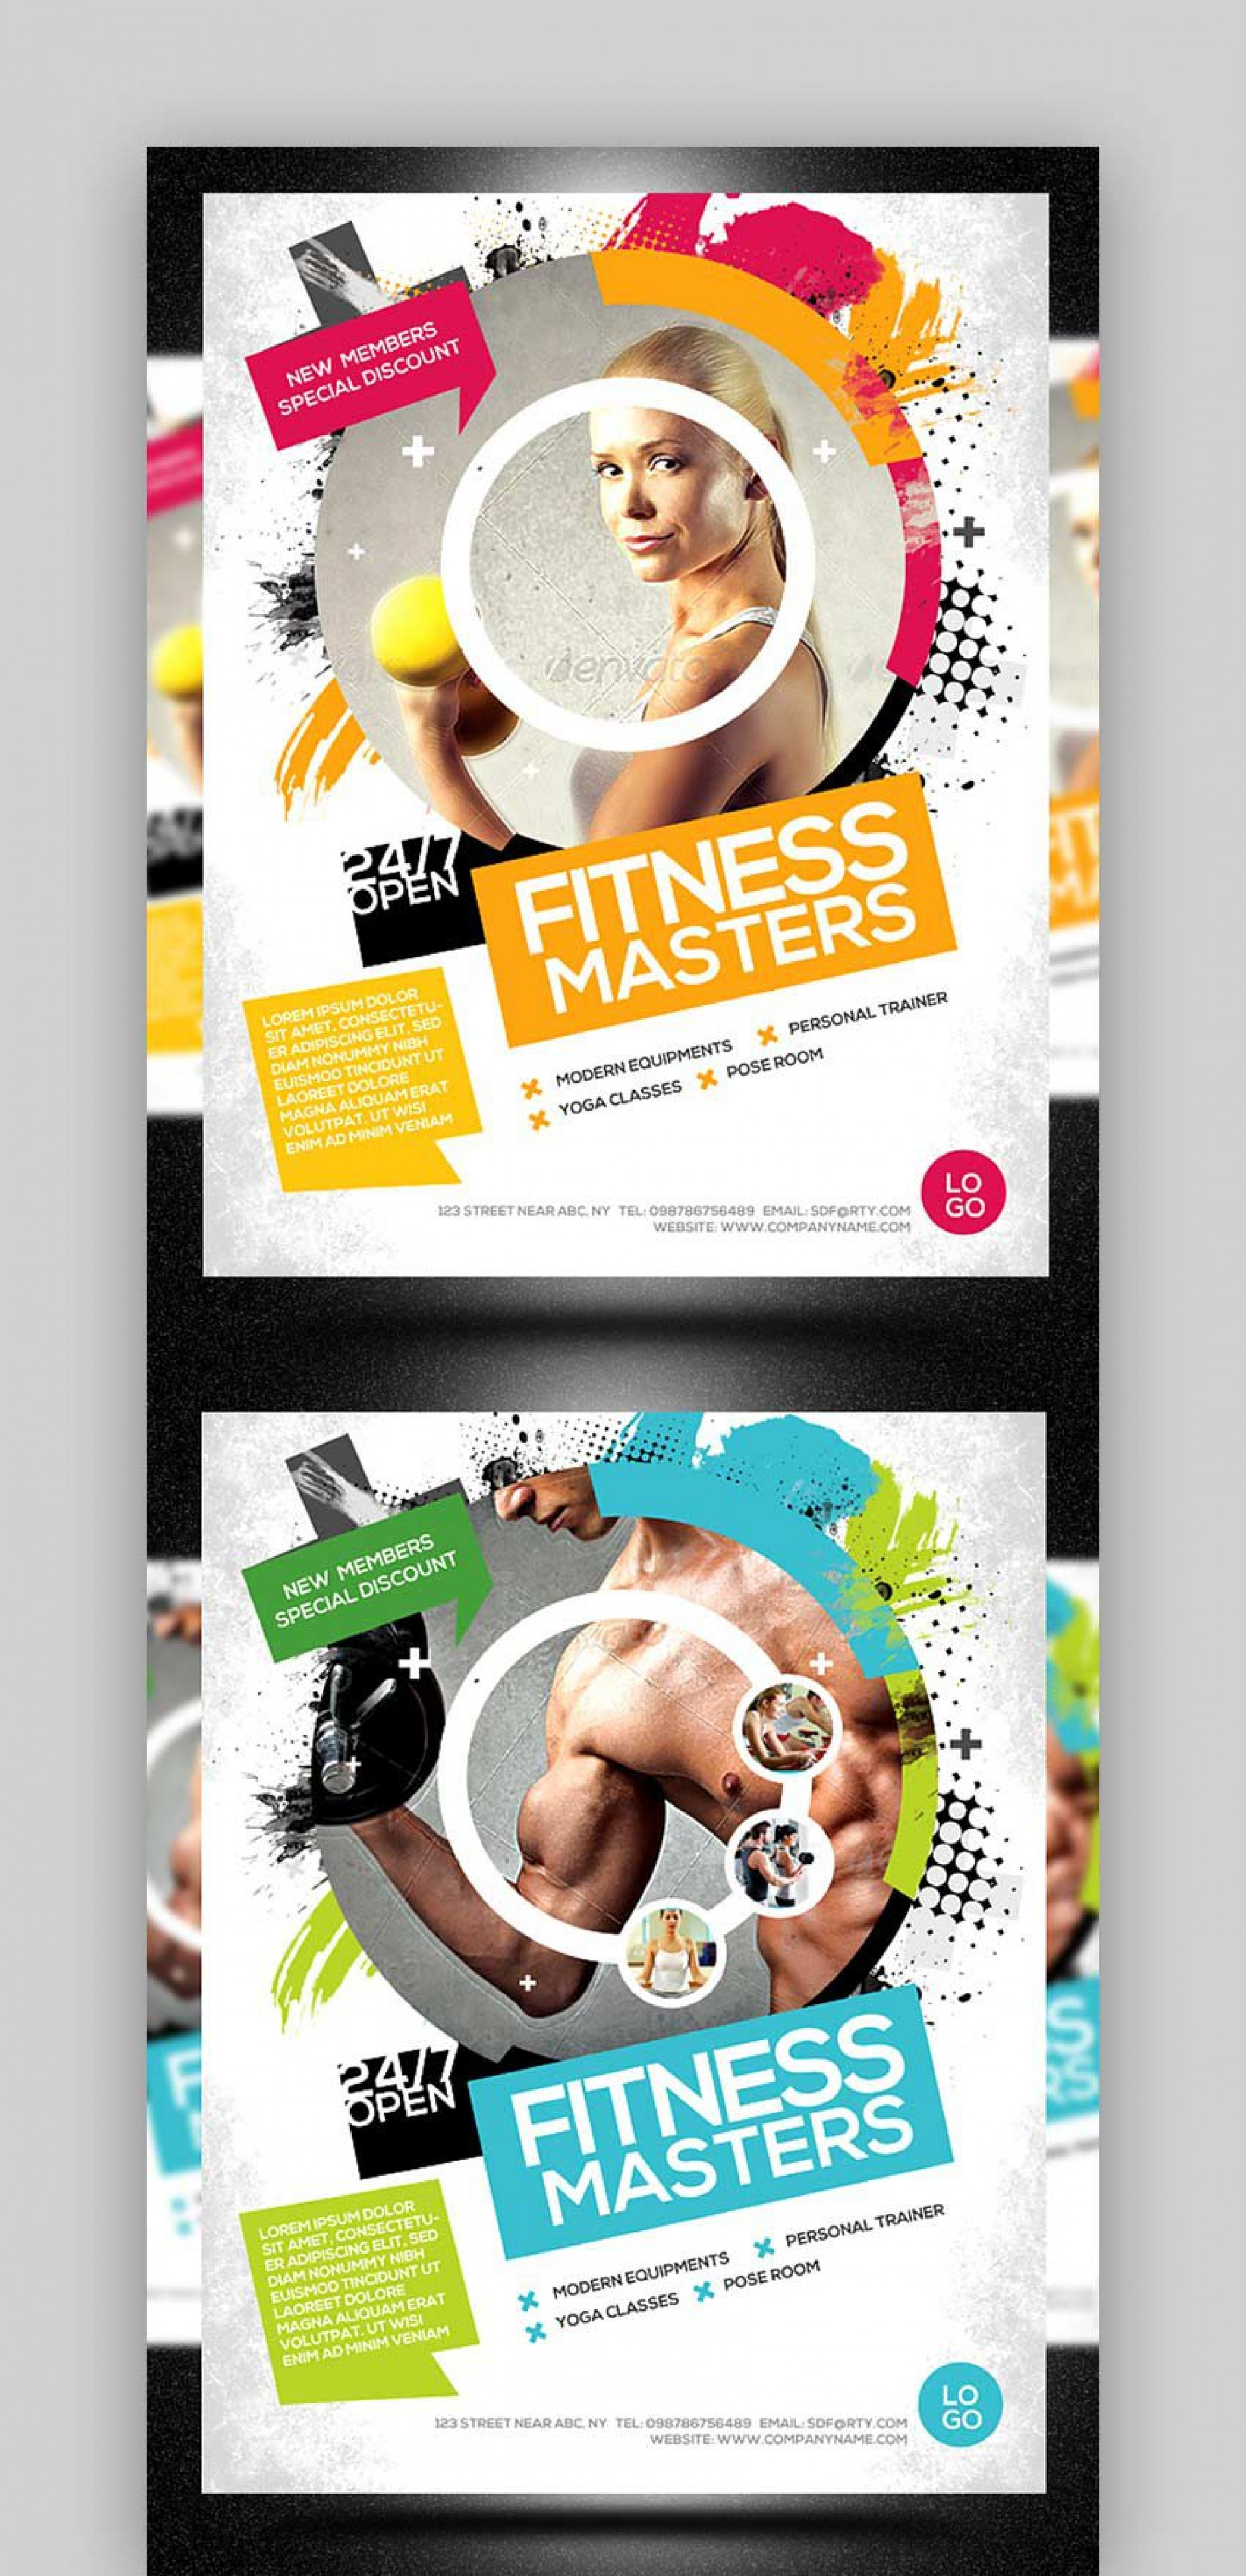 004 Stunning Adobe Photoshop Psd Poster Template Free Download High Resolution 1920